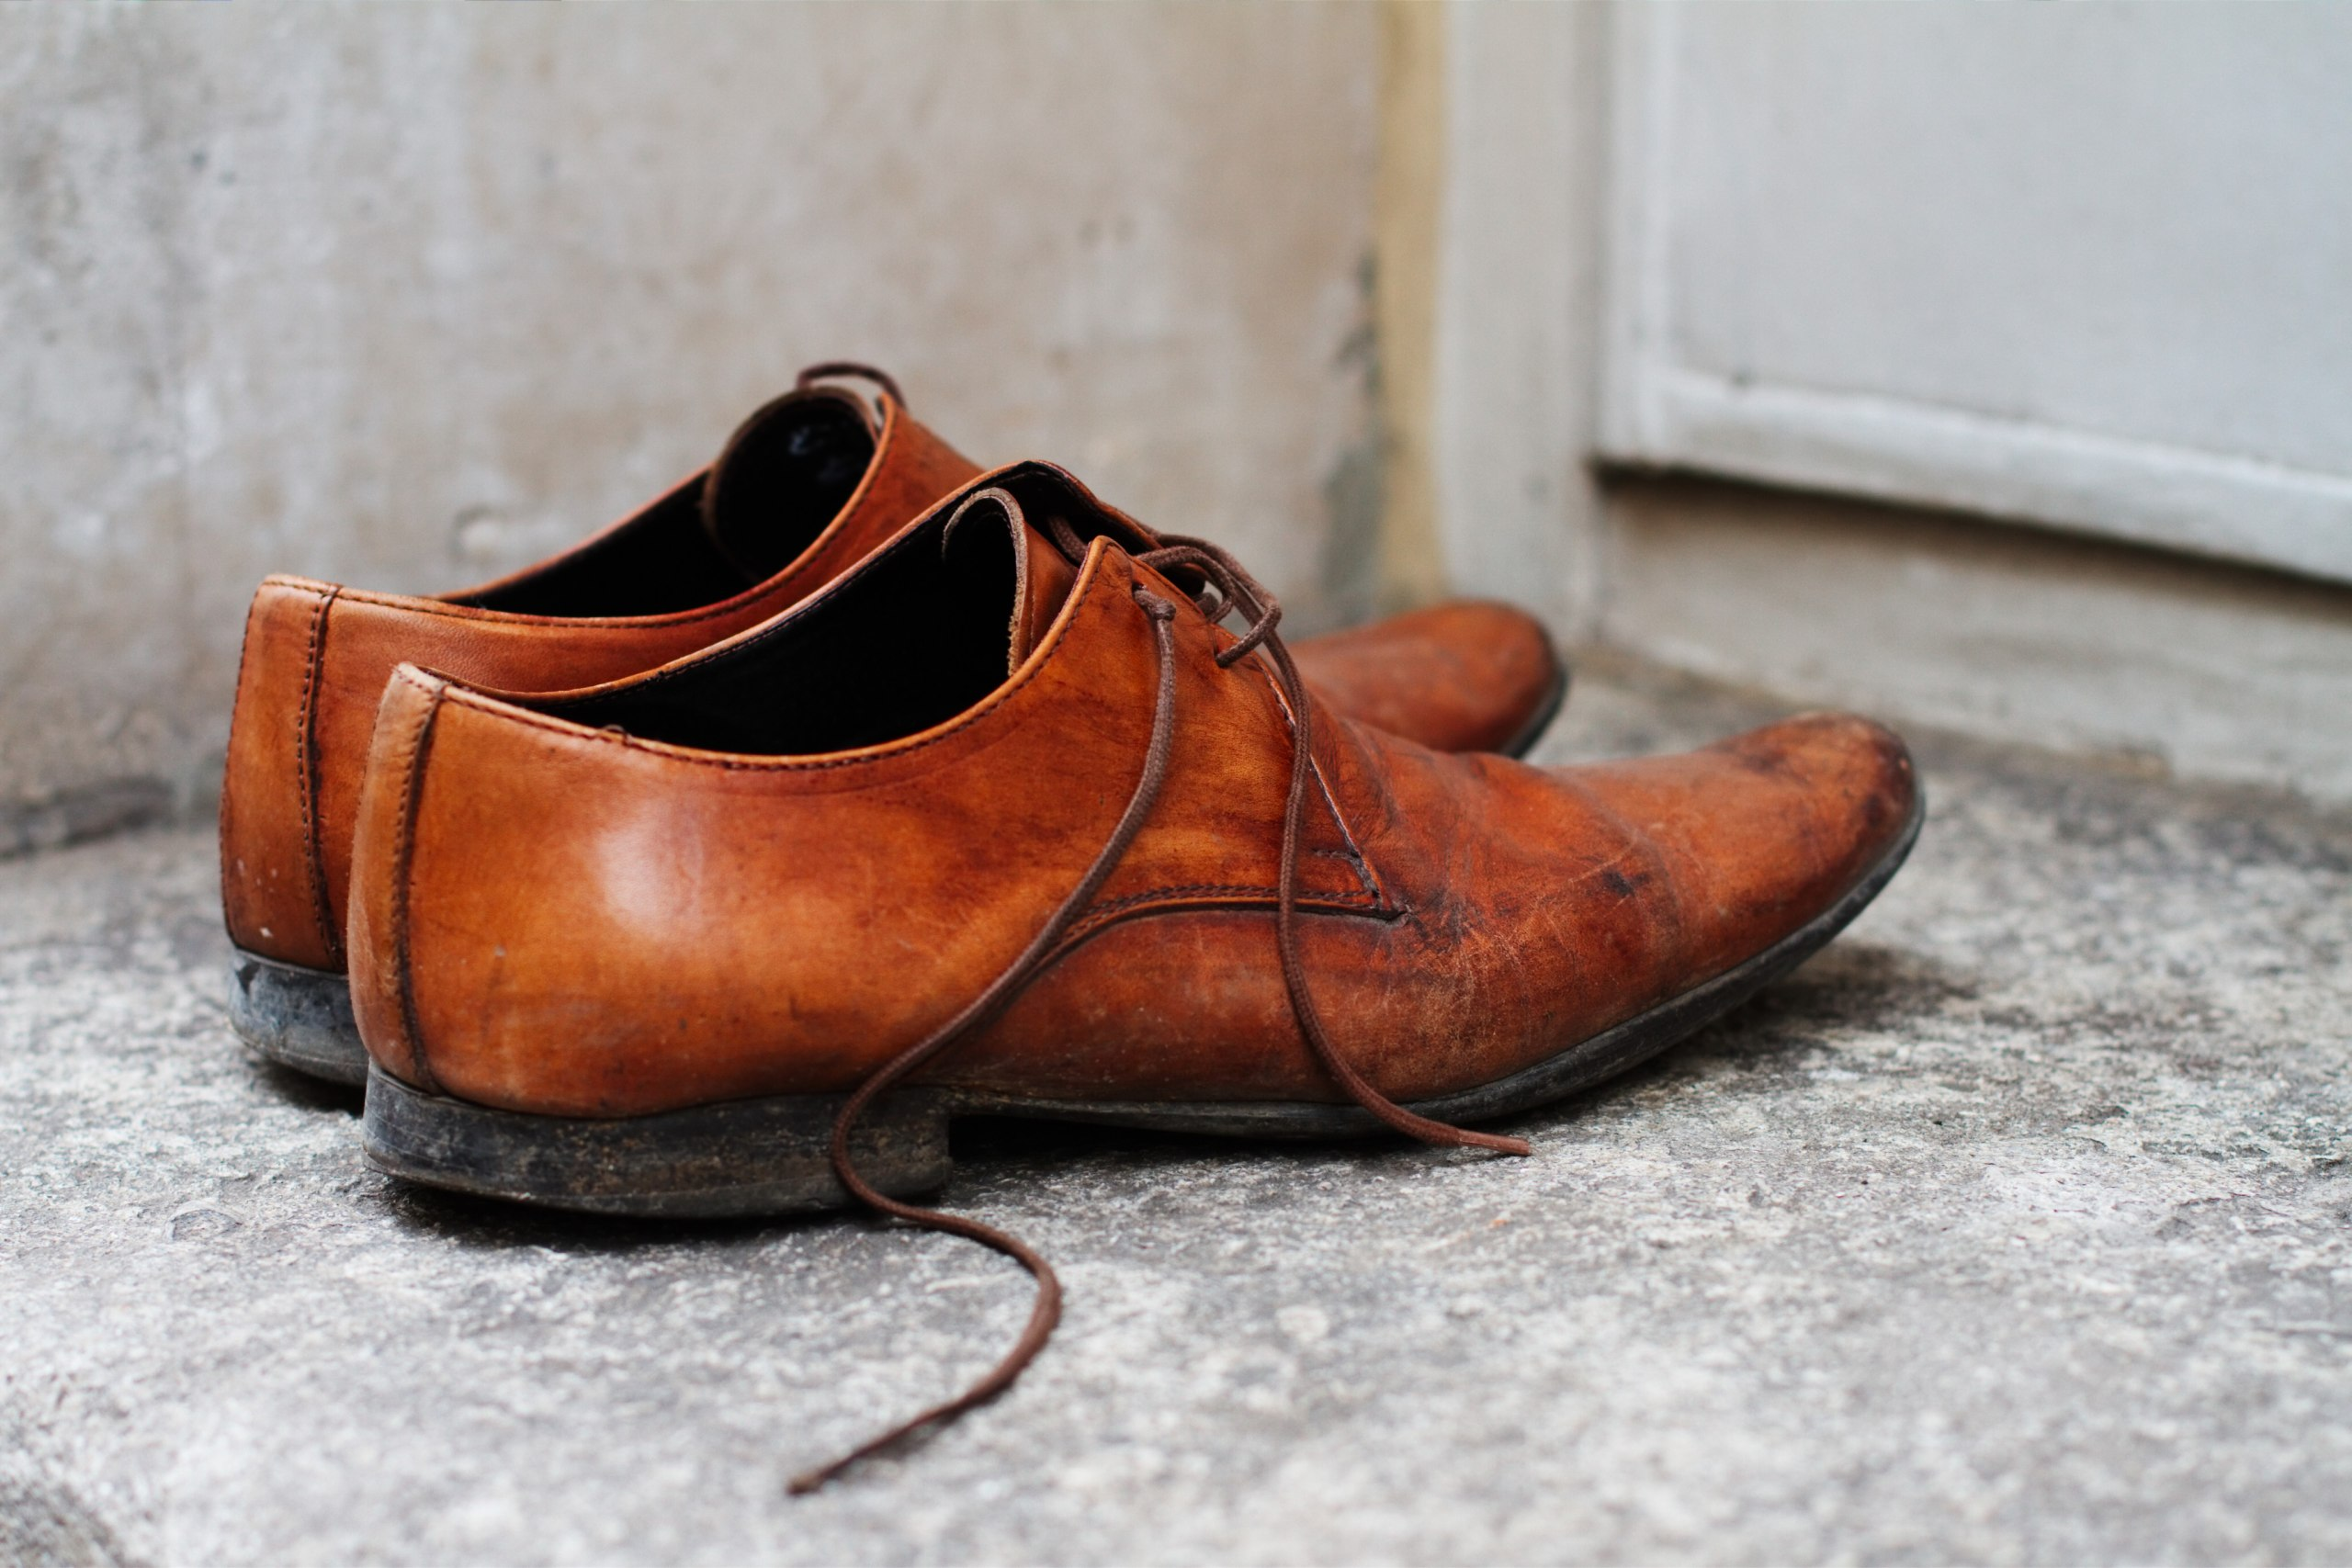 Oh My Shoes! by Pierre (Rennes) via Flickr.com